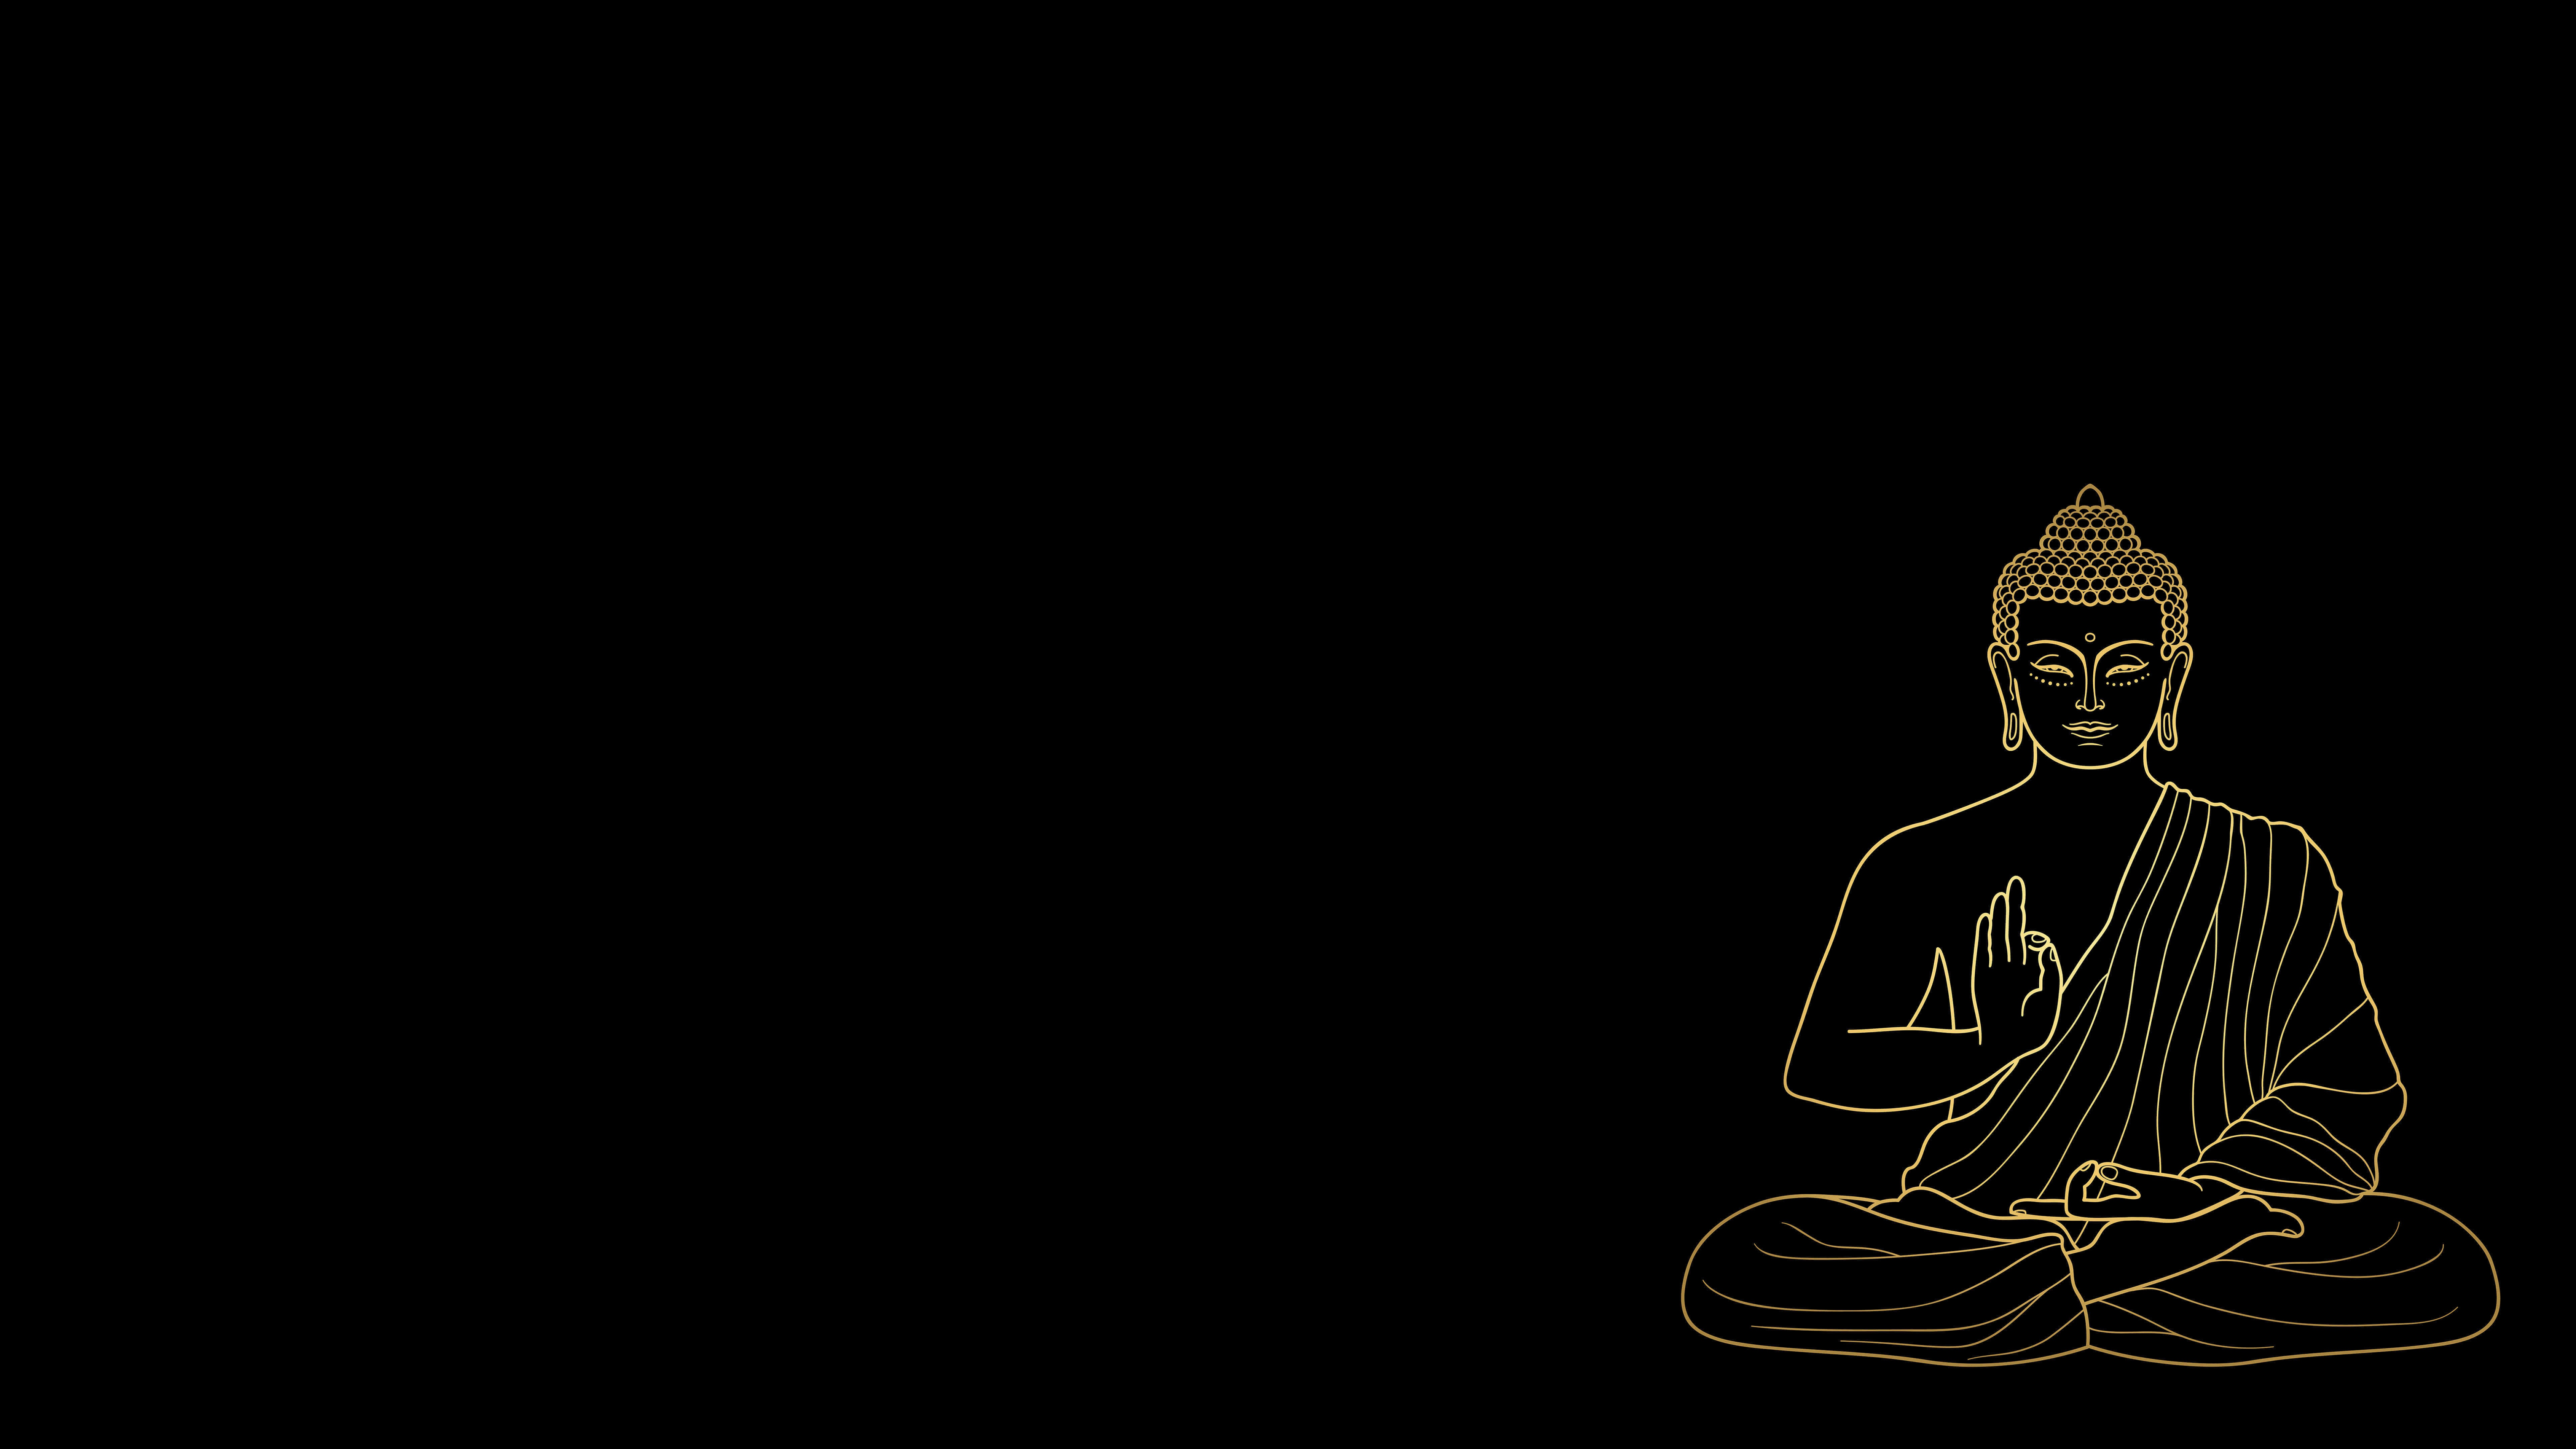 Golden Buddha wallpaper